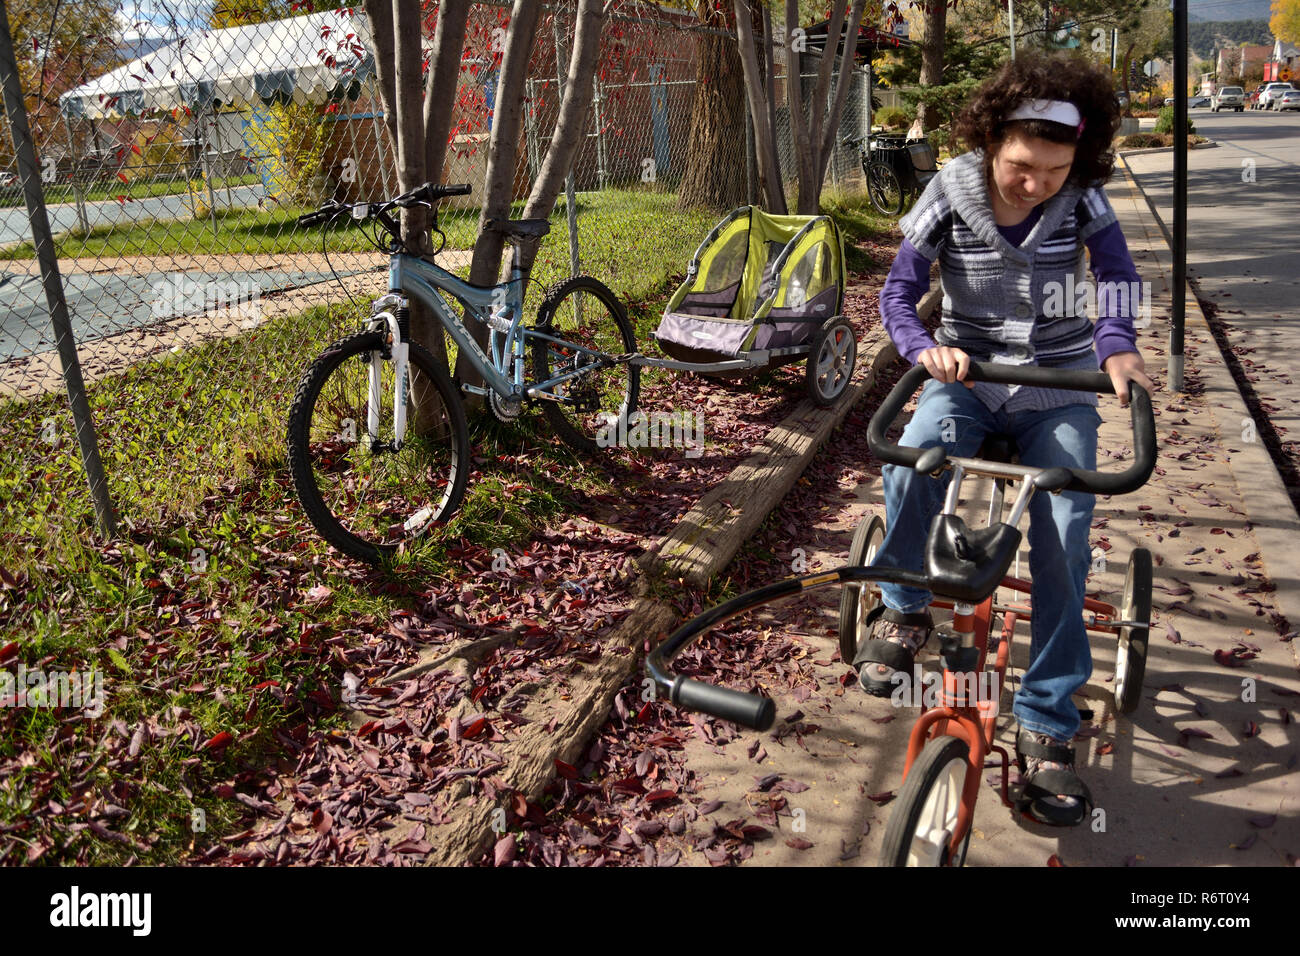 An example of community inclusion, a young woman with special needs rides an adaptive bike in her bike-friendly Colorado community. - Stock Image